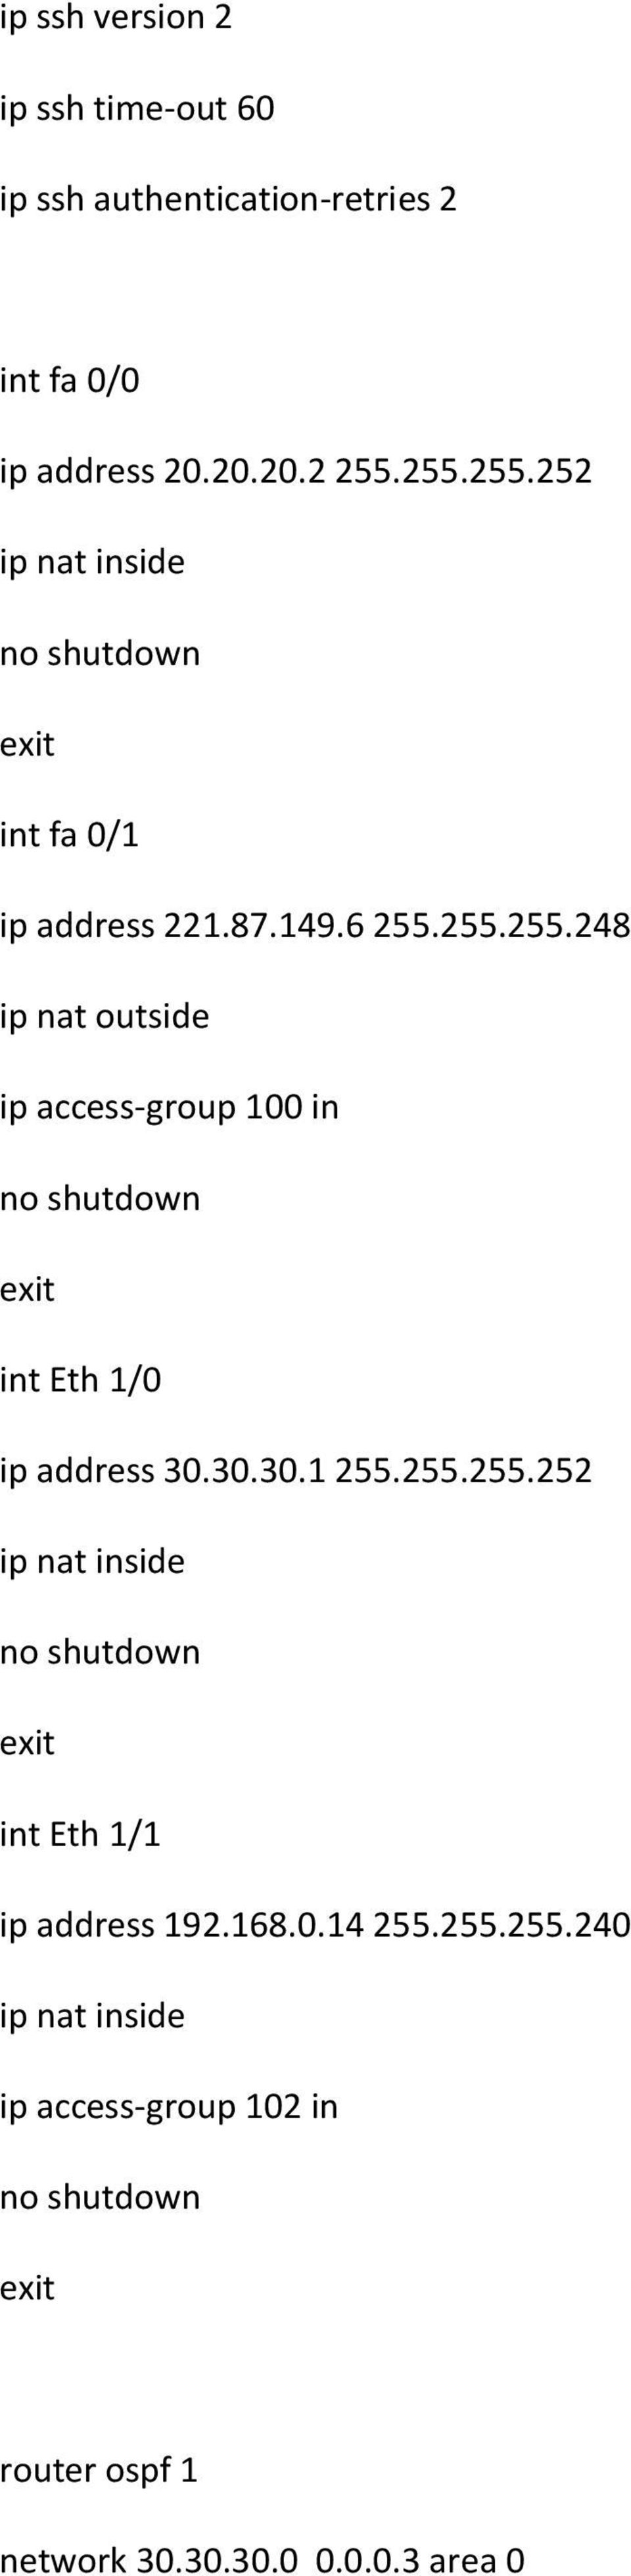 30.30.1 255.255.255.252 ip nat inside no shutdown int Eth 1/1 ip address 192.168.0.14 255.255.255.240 ip nat inside ip access-group 102 in no shutdown router ospf 1 network 30.